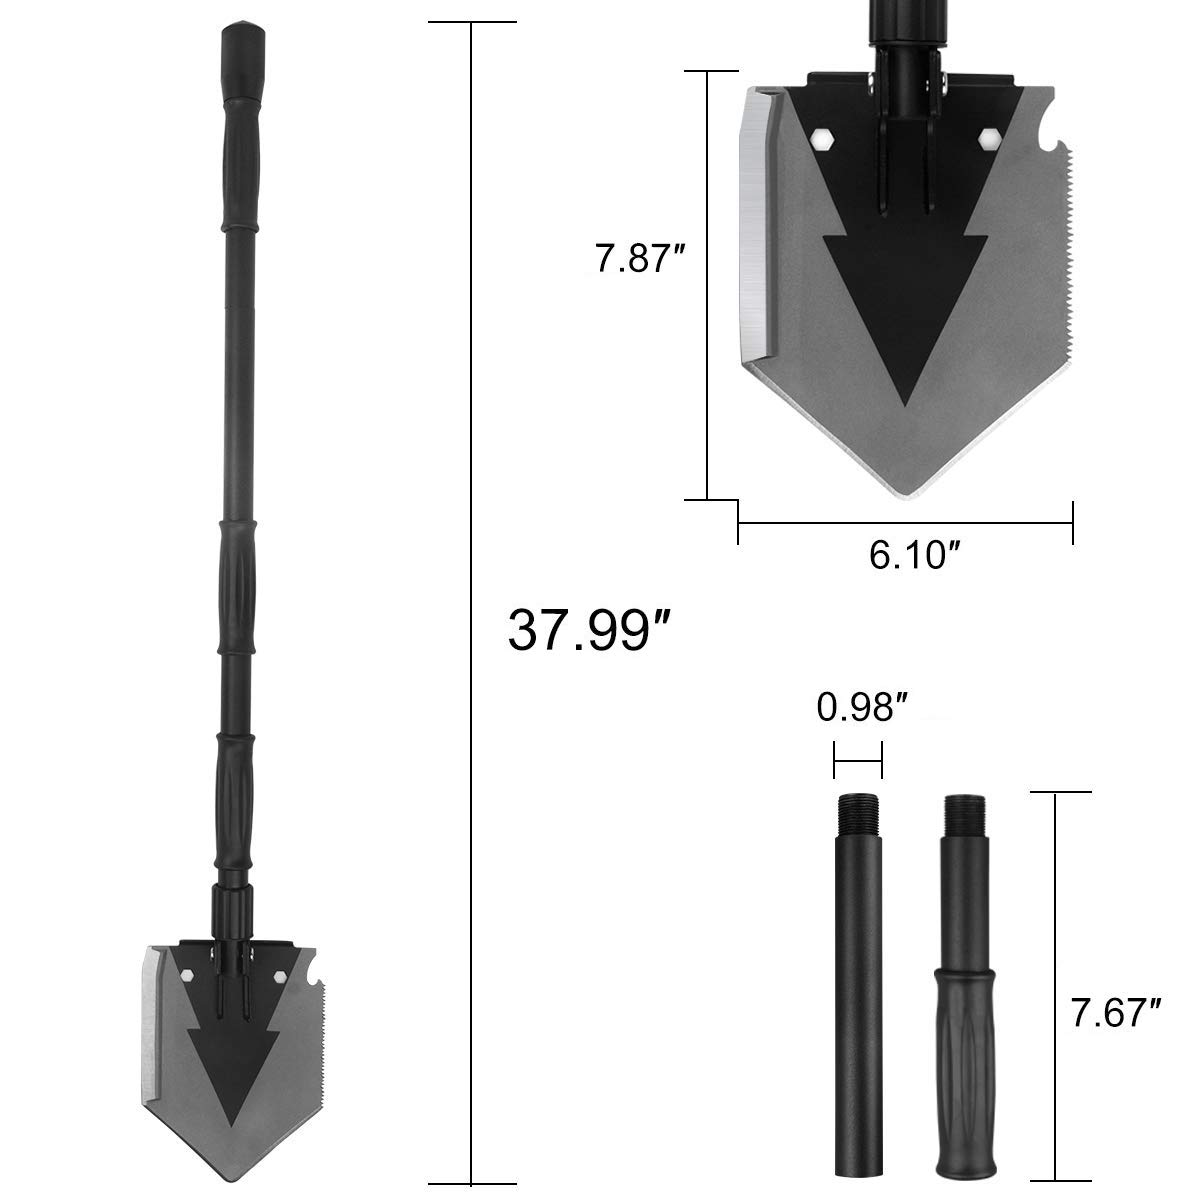 Portable Folding Shovel Pickax with Tactical Waist Pack All-in-1 Surplus Military Multitool Tactical Spade for Outdoor Camping Hiking Backpacking Entrenching Garden Tool Car Emergency 38 inch Length by Yeacool (Image #3)